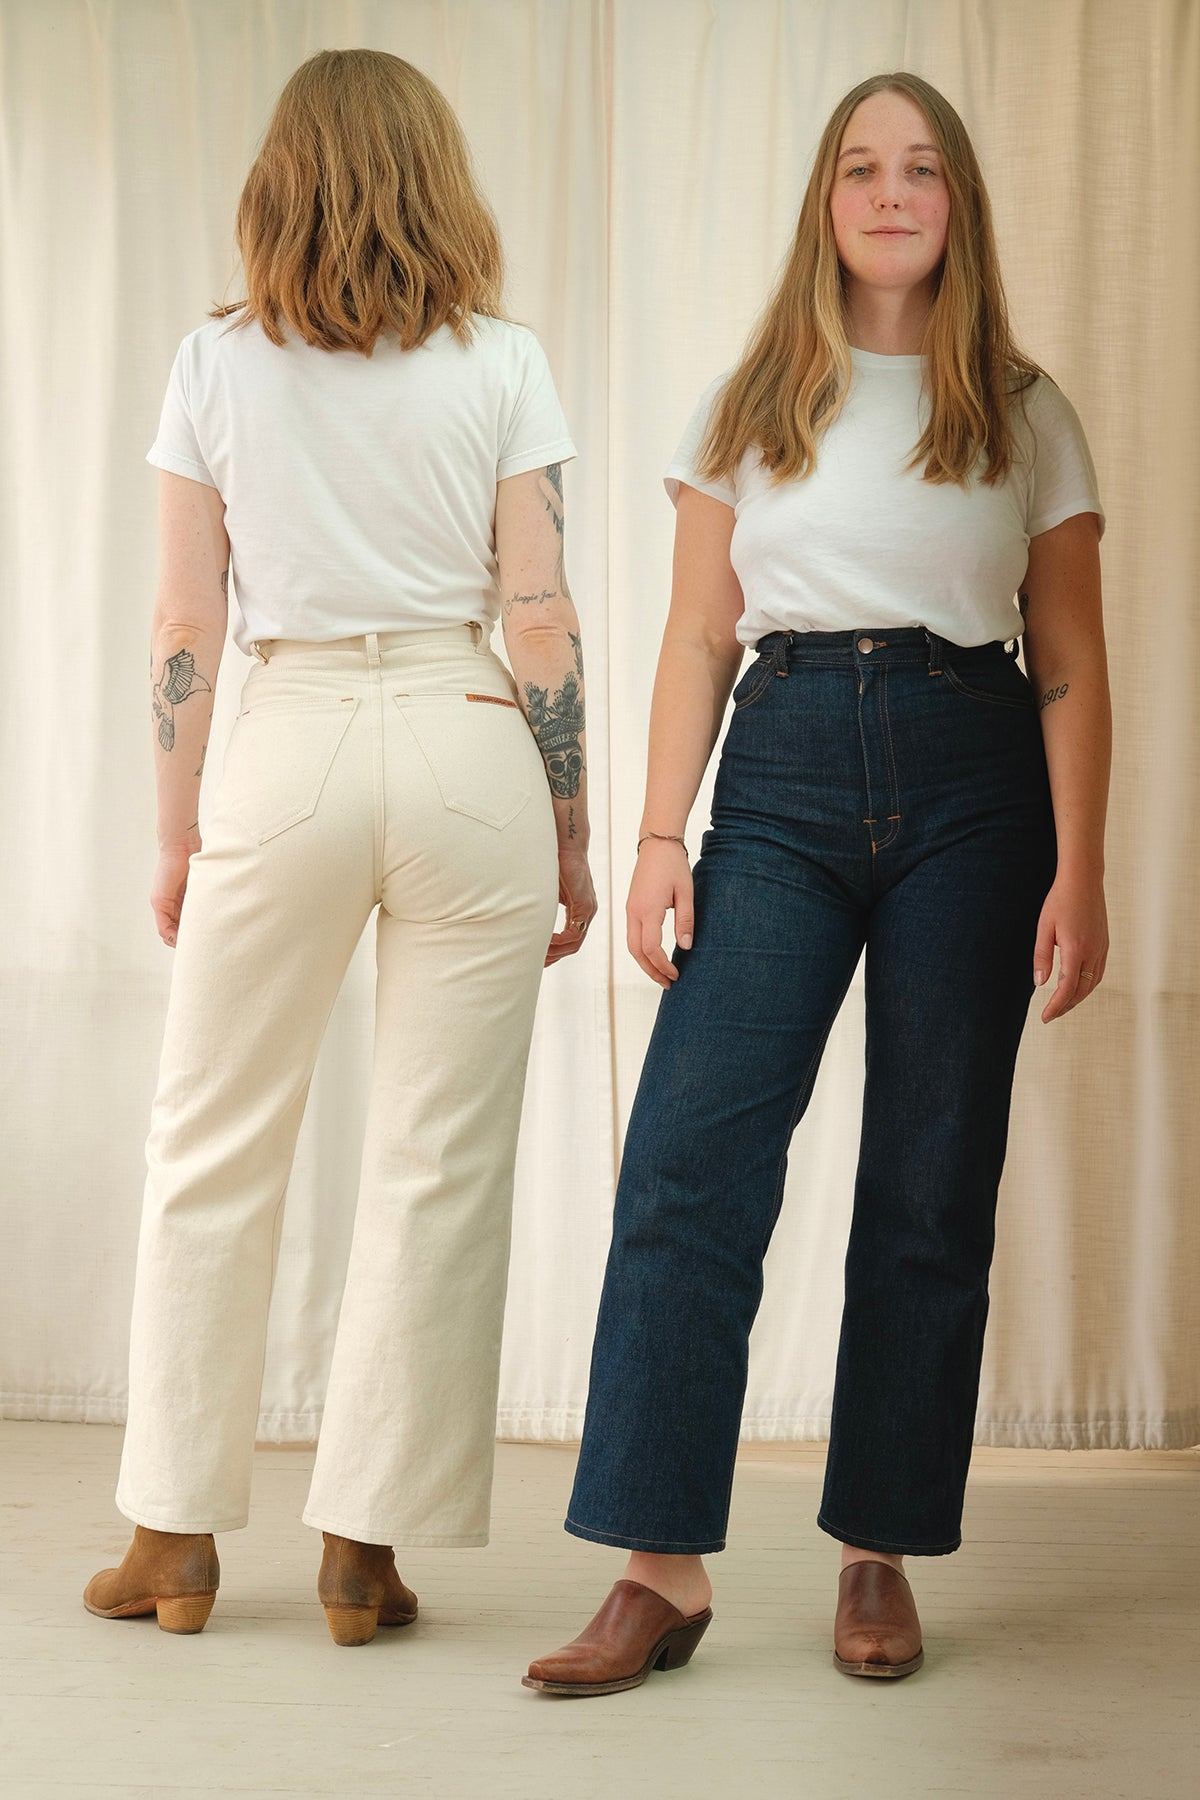 Two models wearing HIGH POPE jeans. One in denim blue and the other in cream. One facing the backdrop and the other facing the camera.